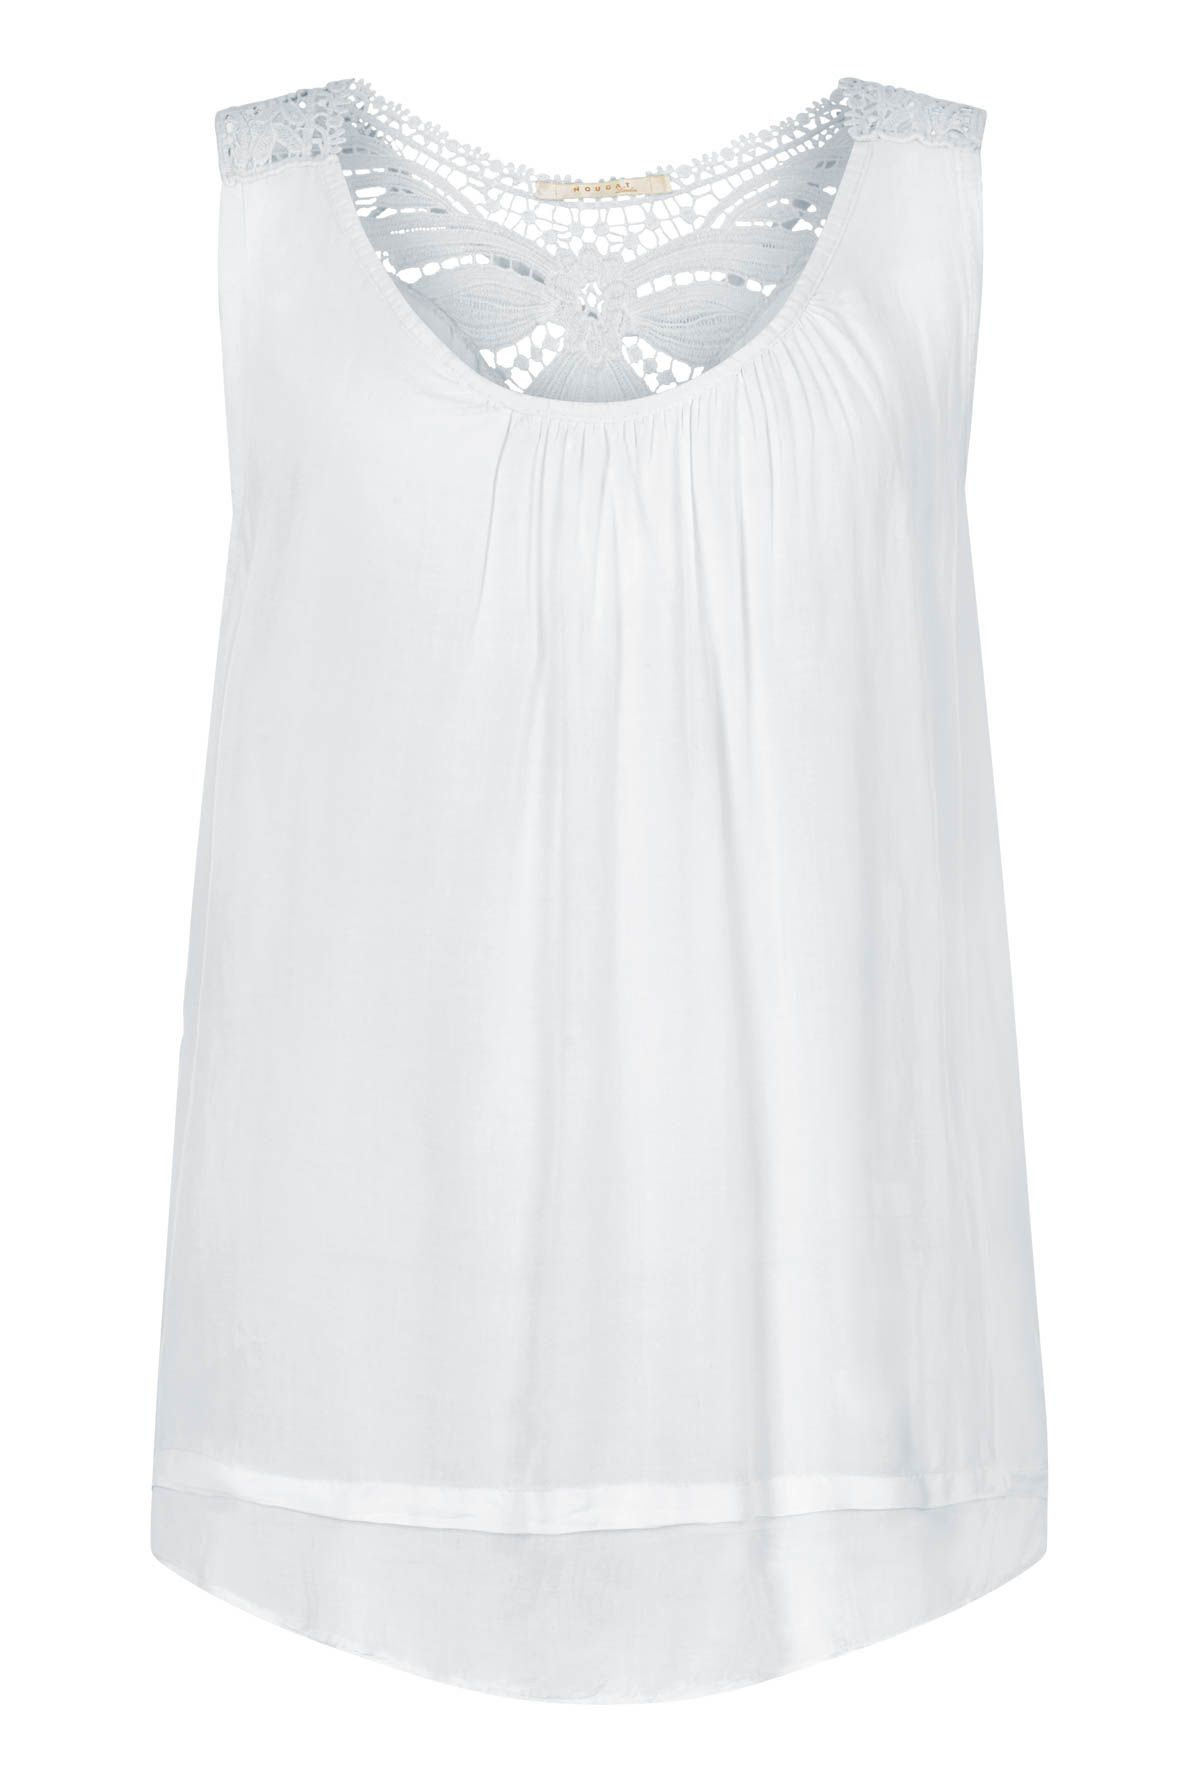 Nougat London Daffodil Embroidered Top, White